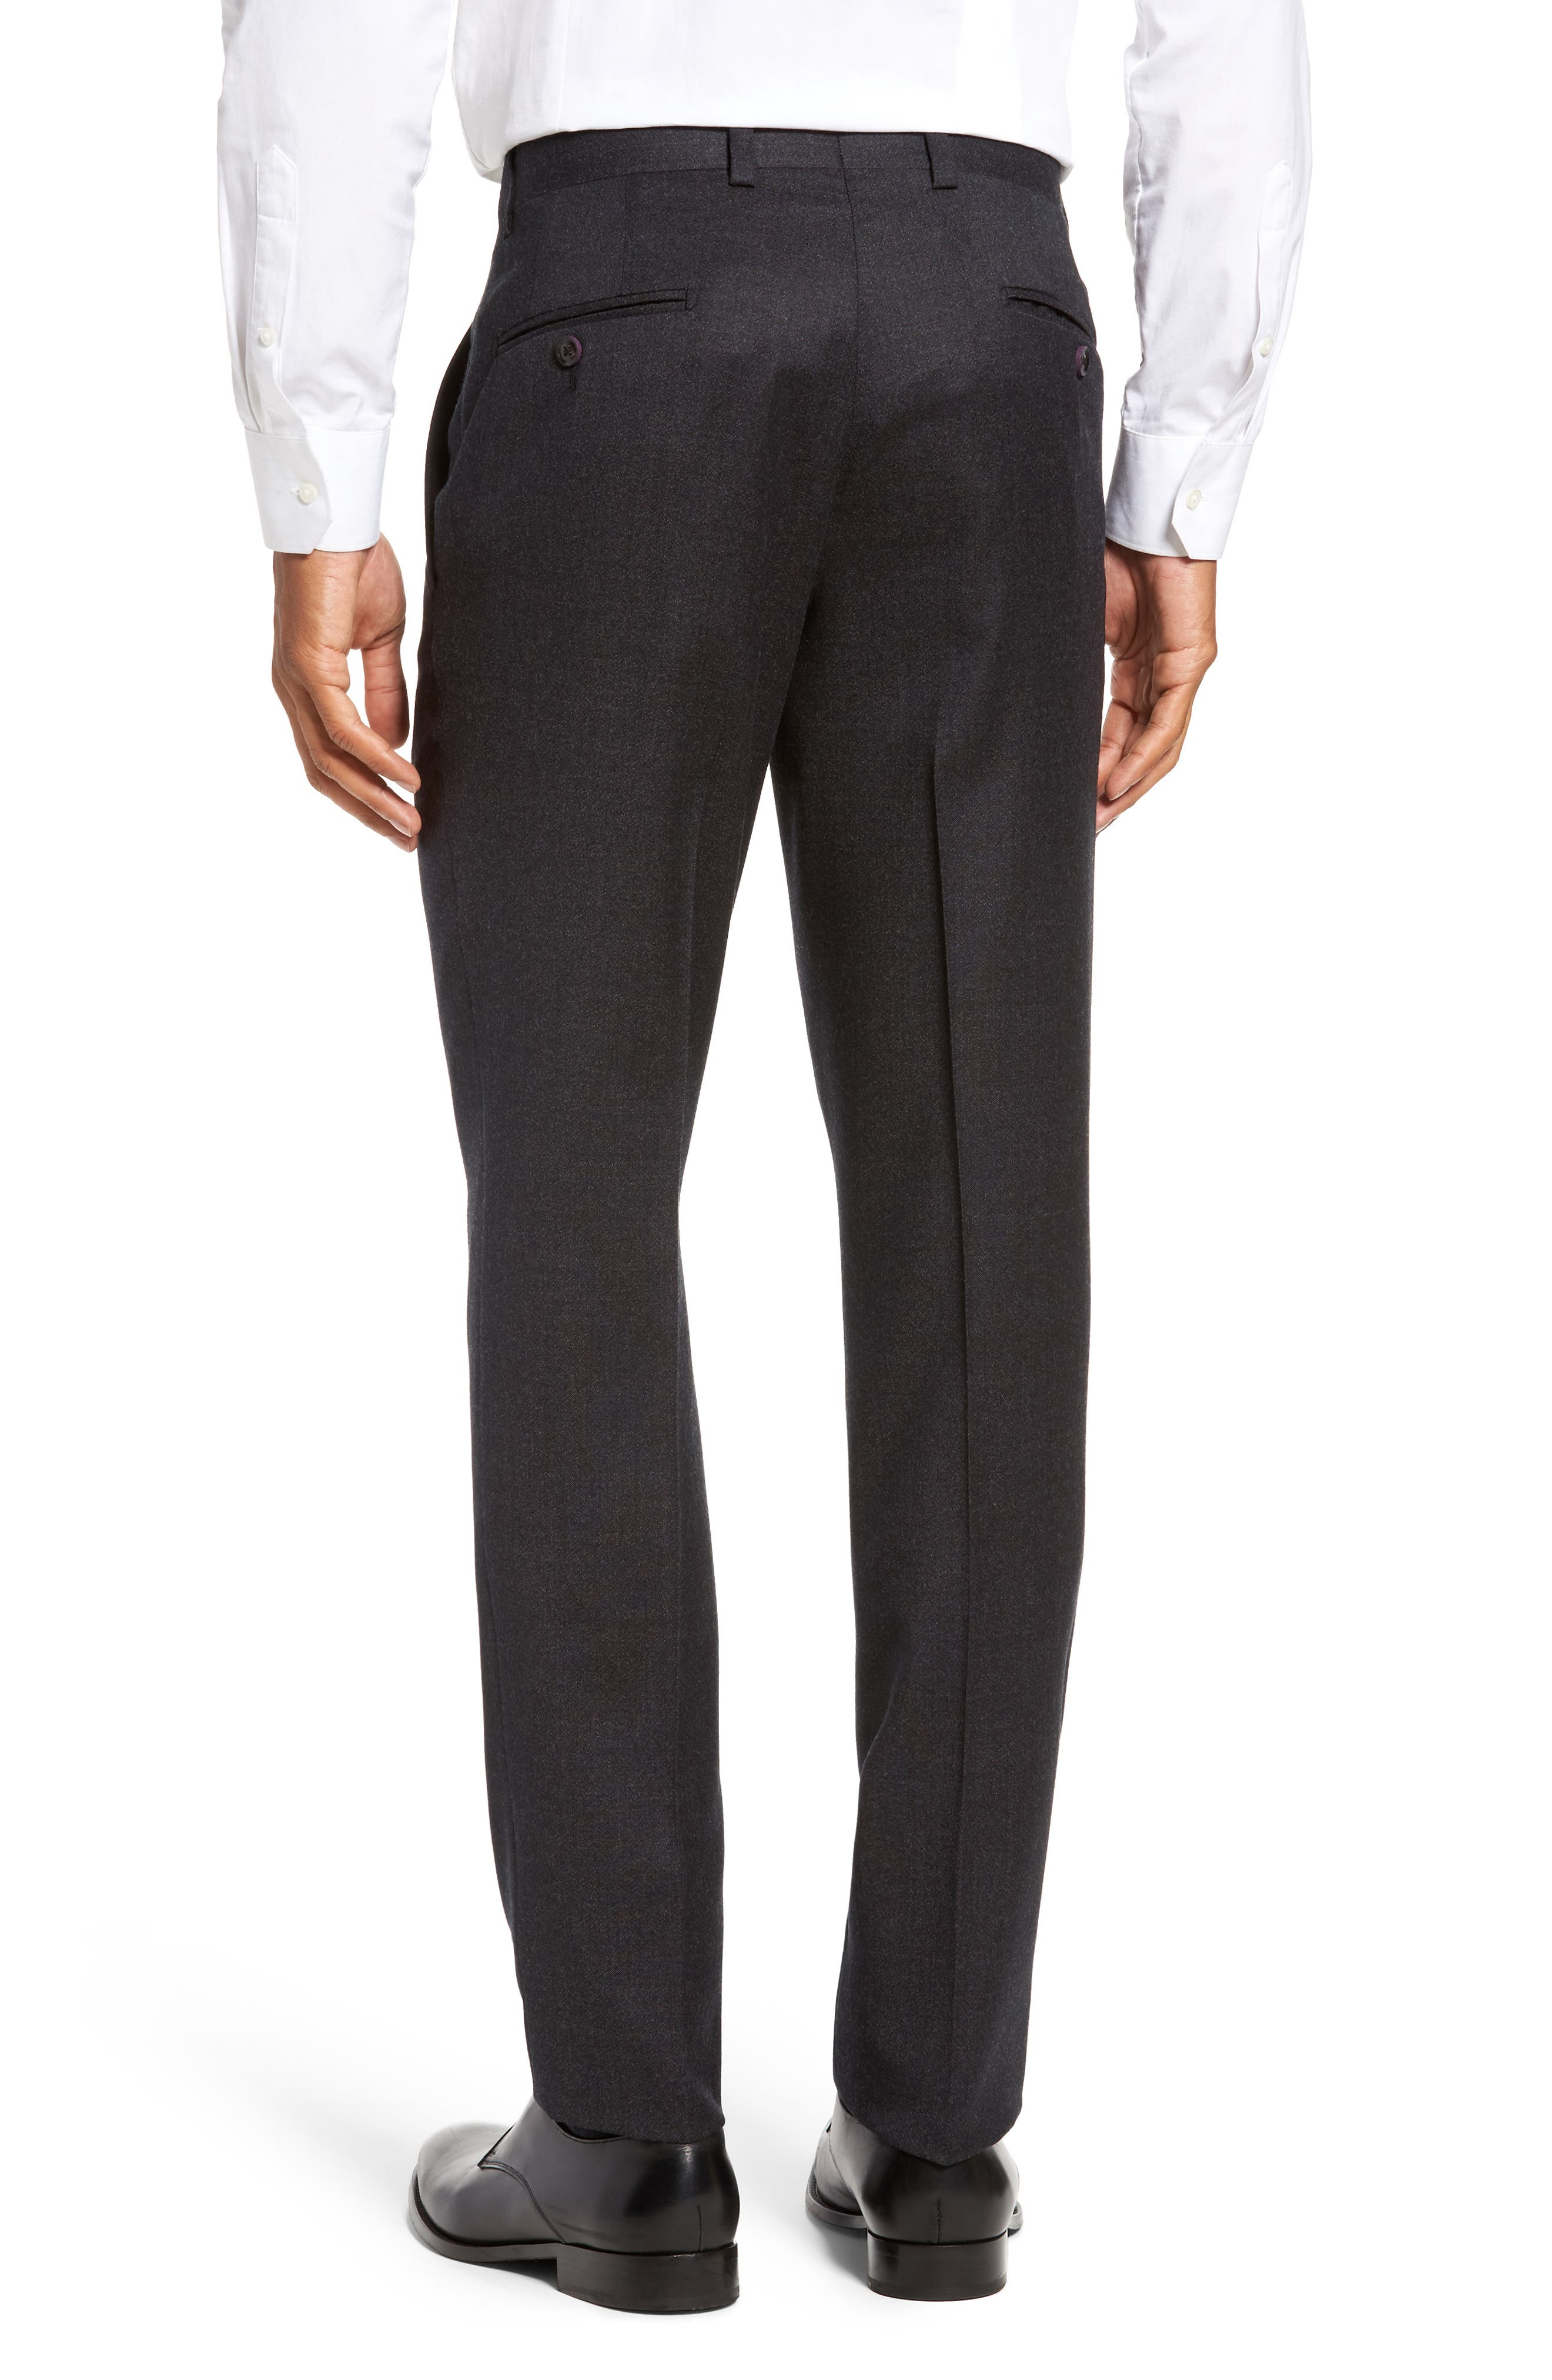 Jeremy Flat Front Solid Wool Trousers,                             Alternate thumbnail 3, color,                             050